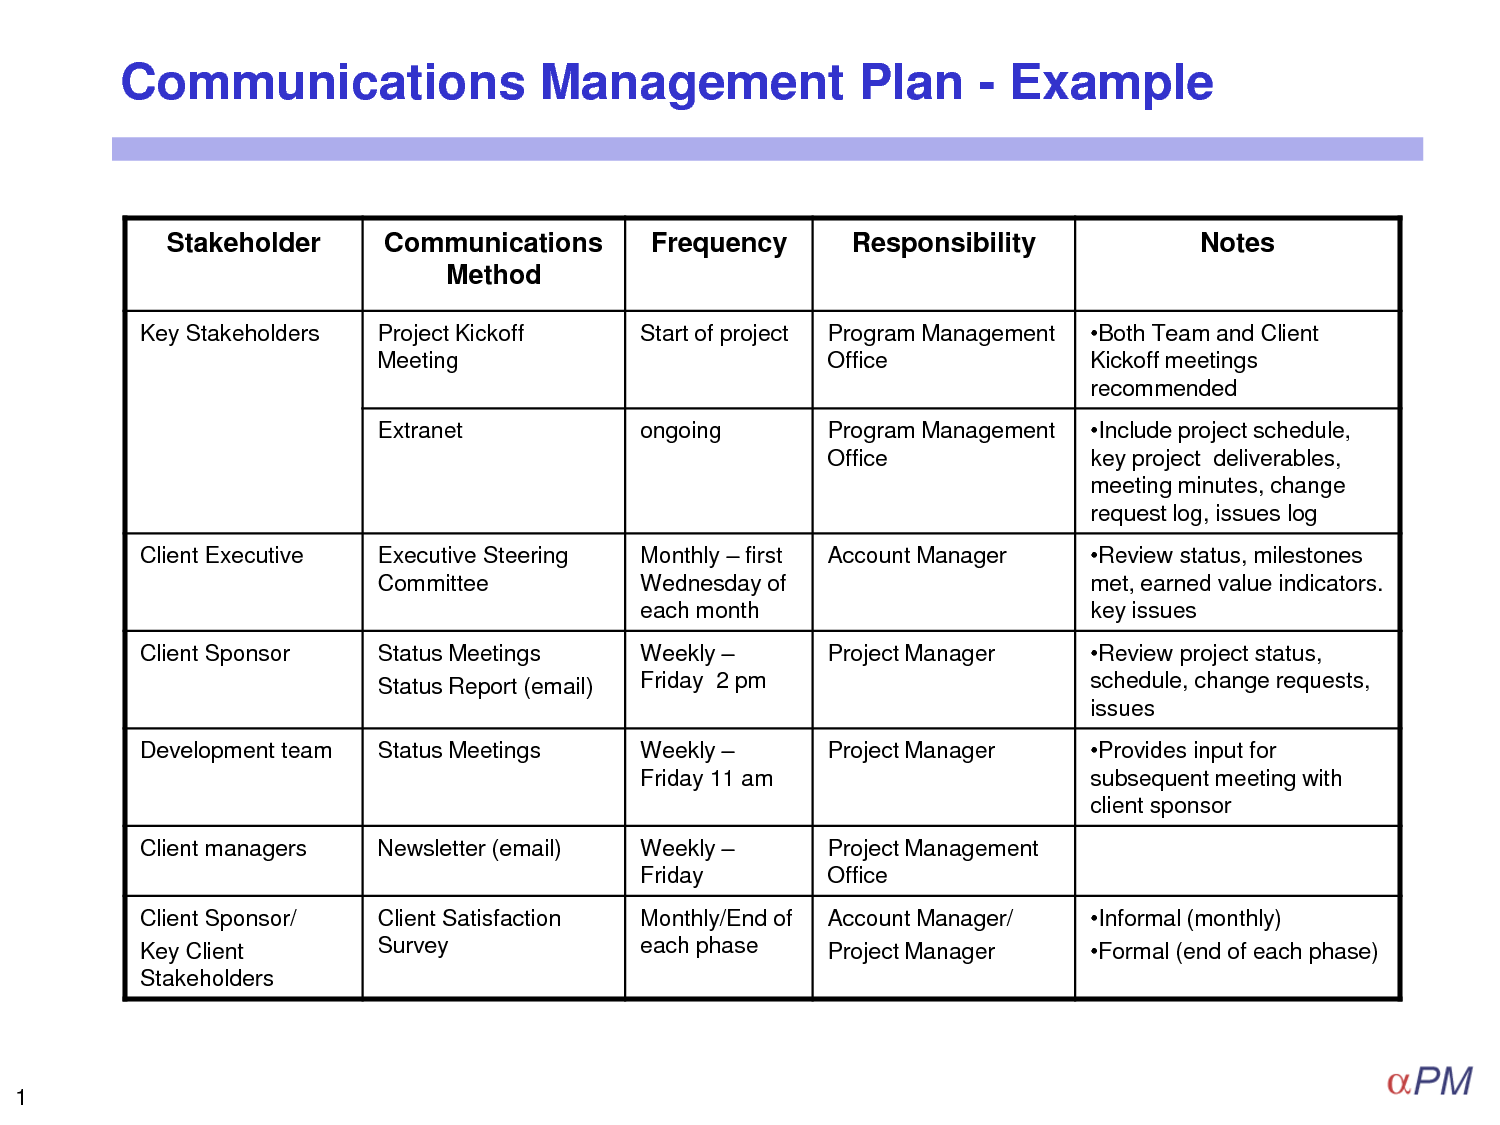 29 Images of Template Communications Management Plan